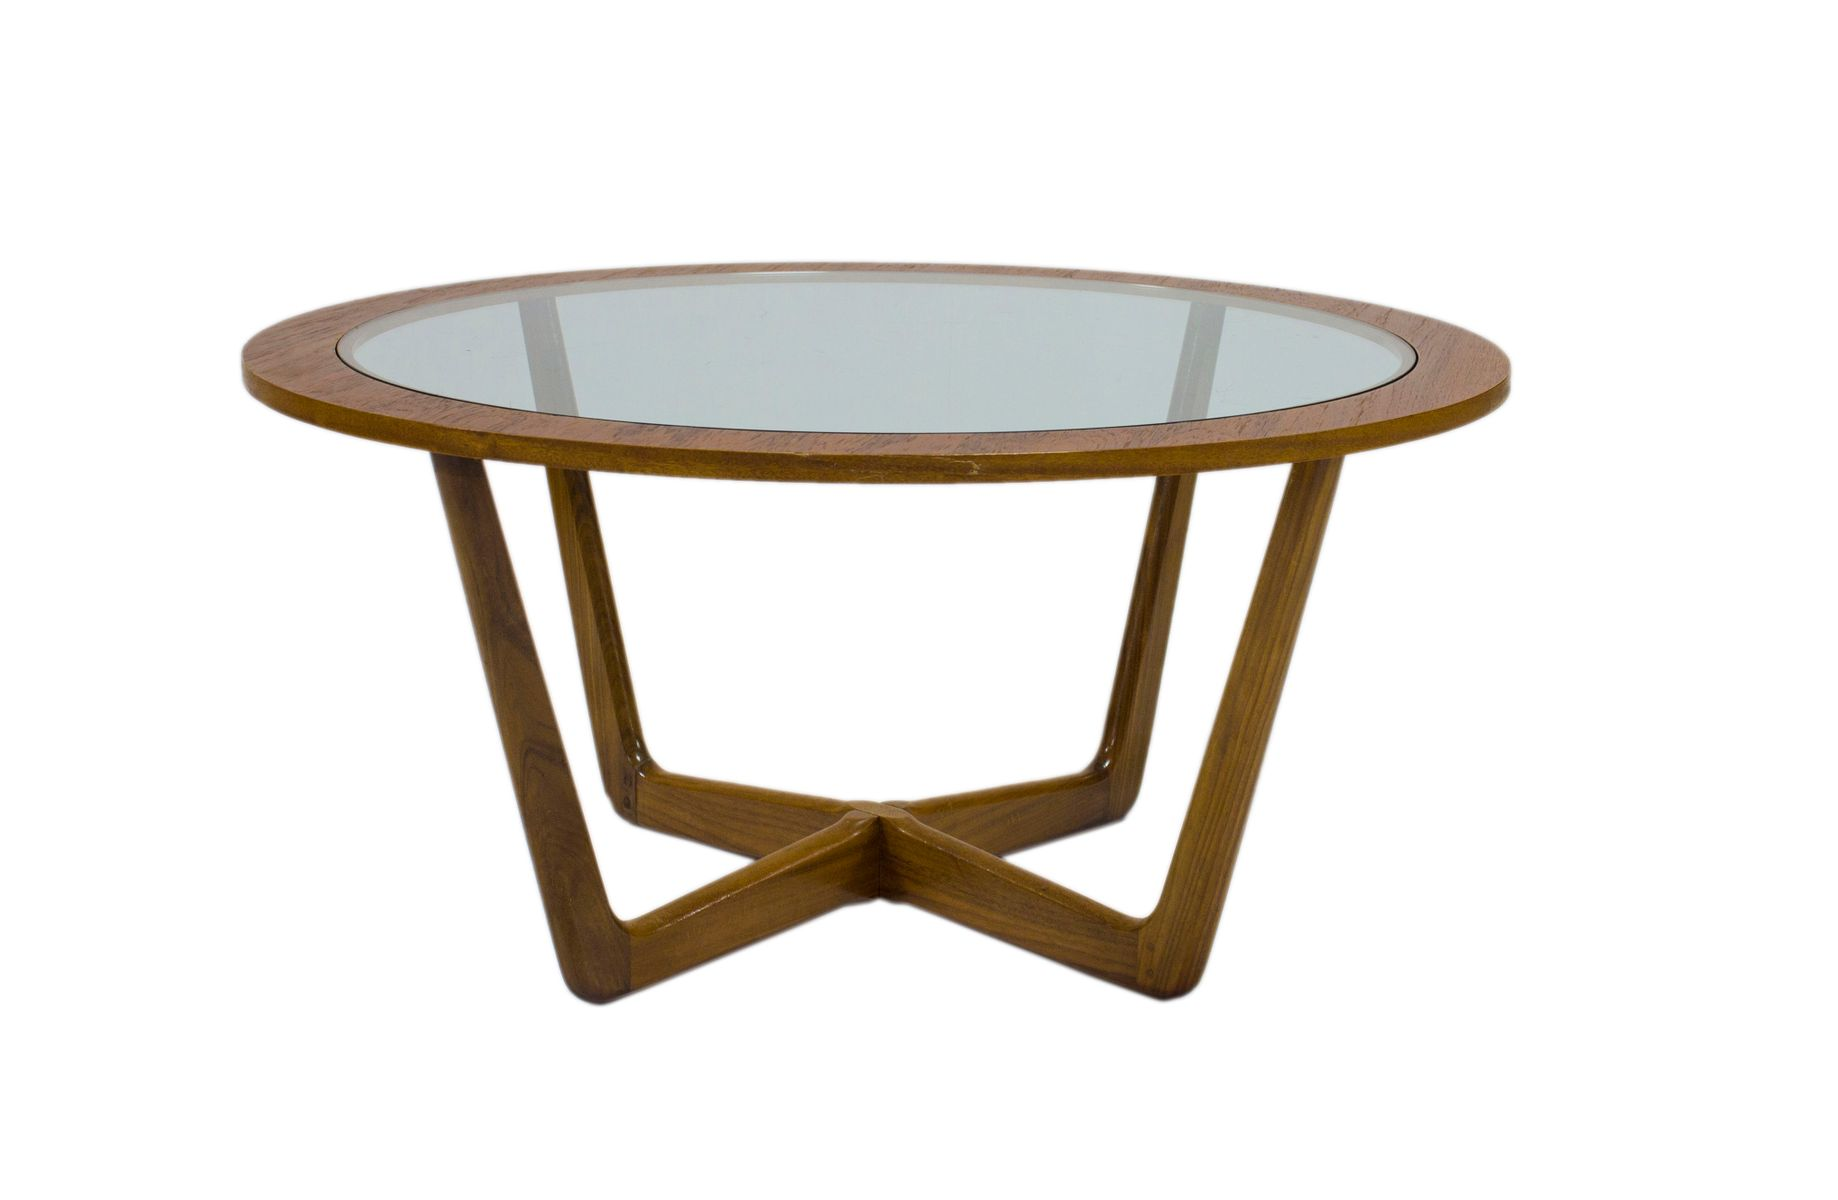 Mid Century Teak Circular Coffee Table from Beithcraft for sale at